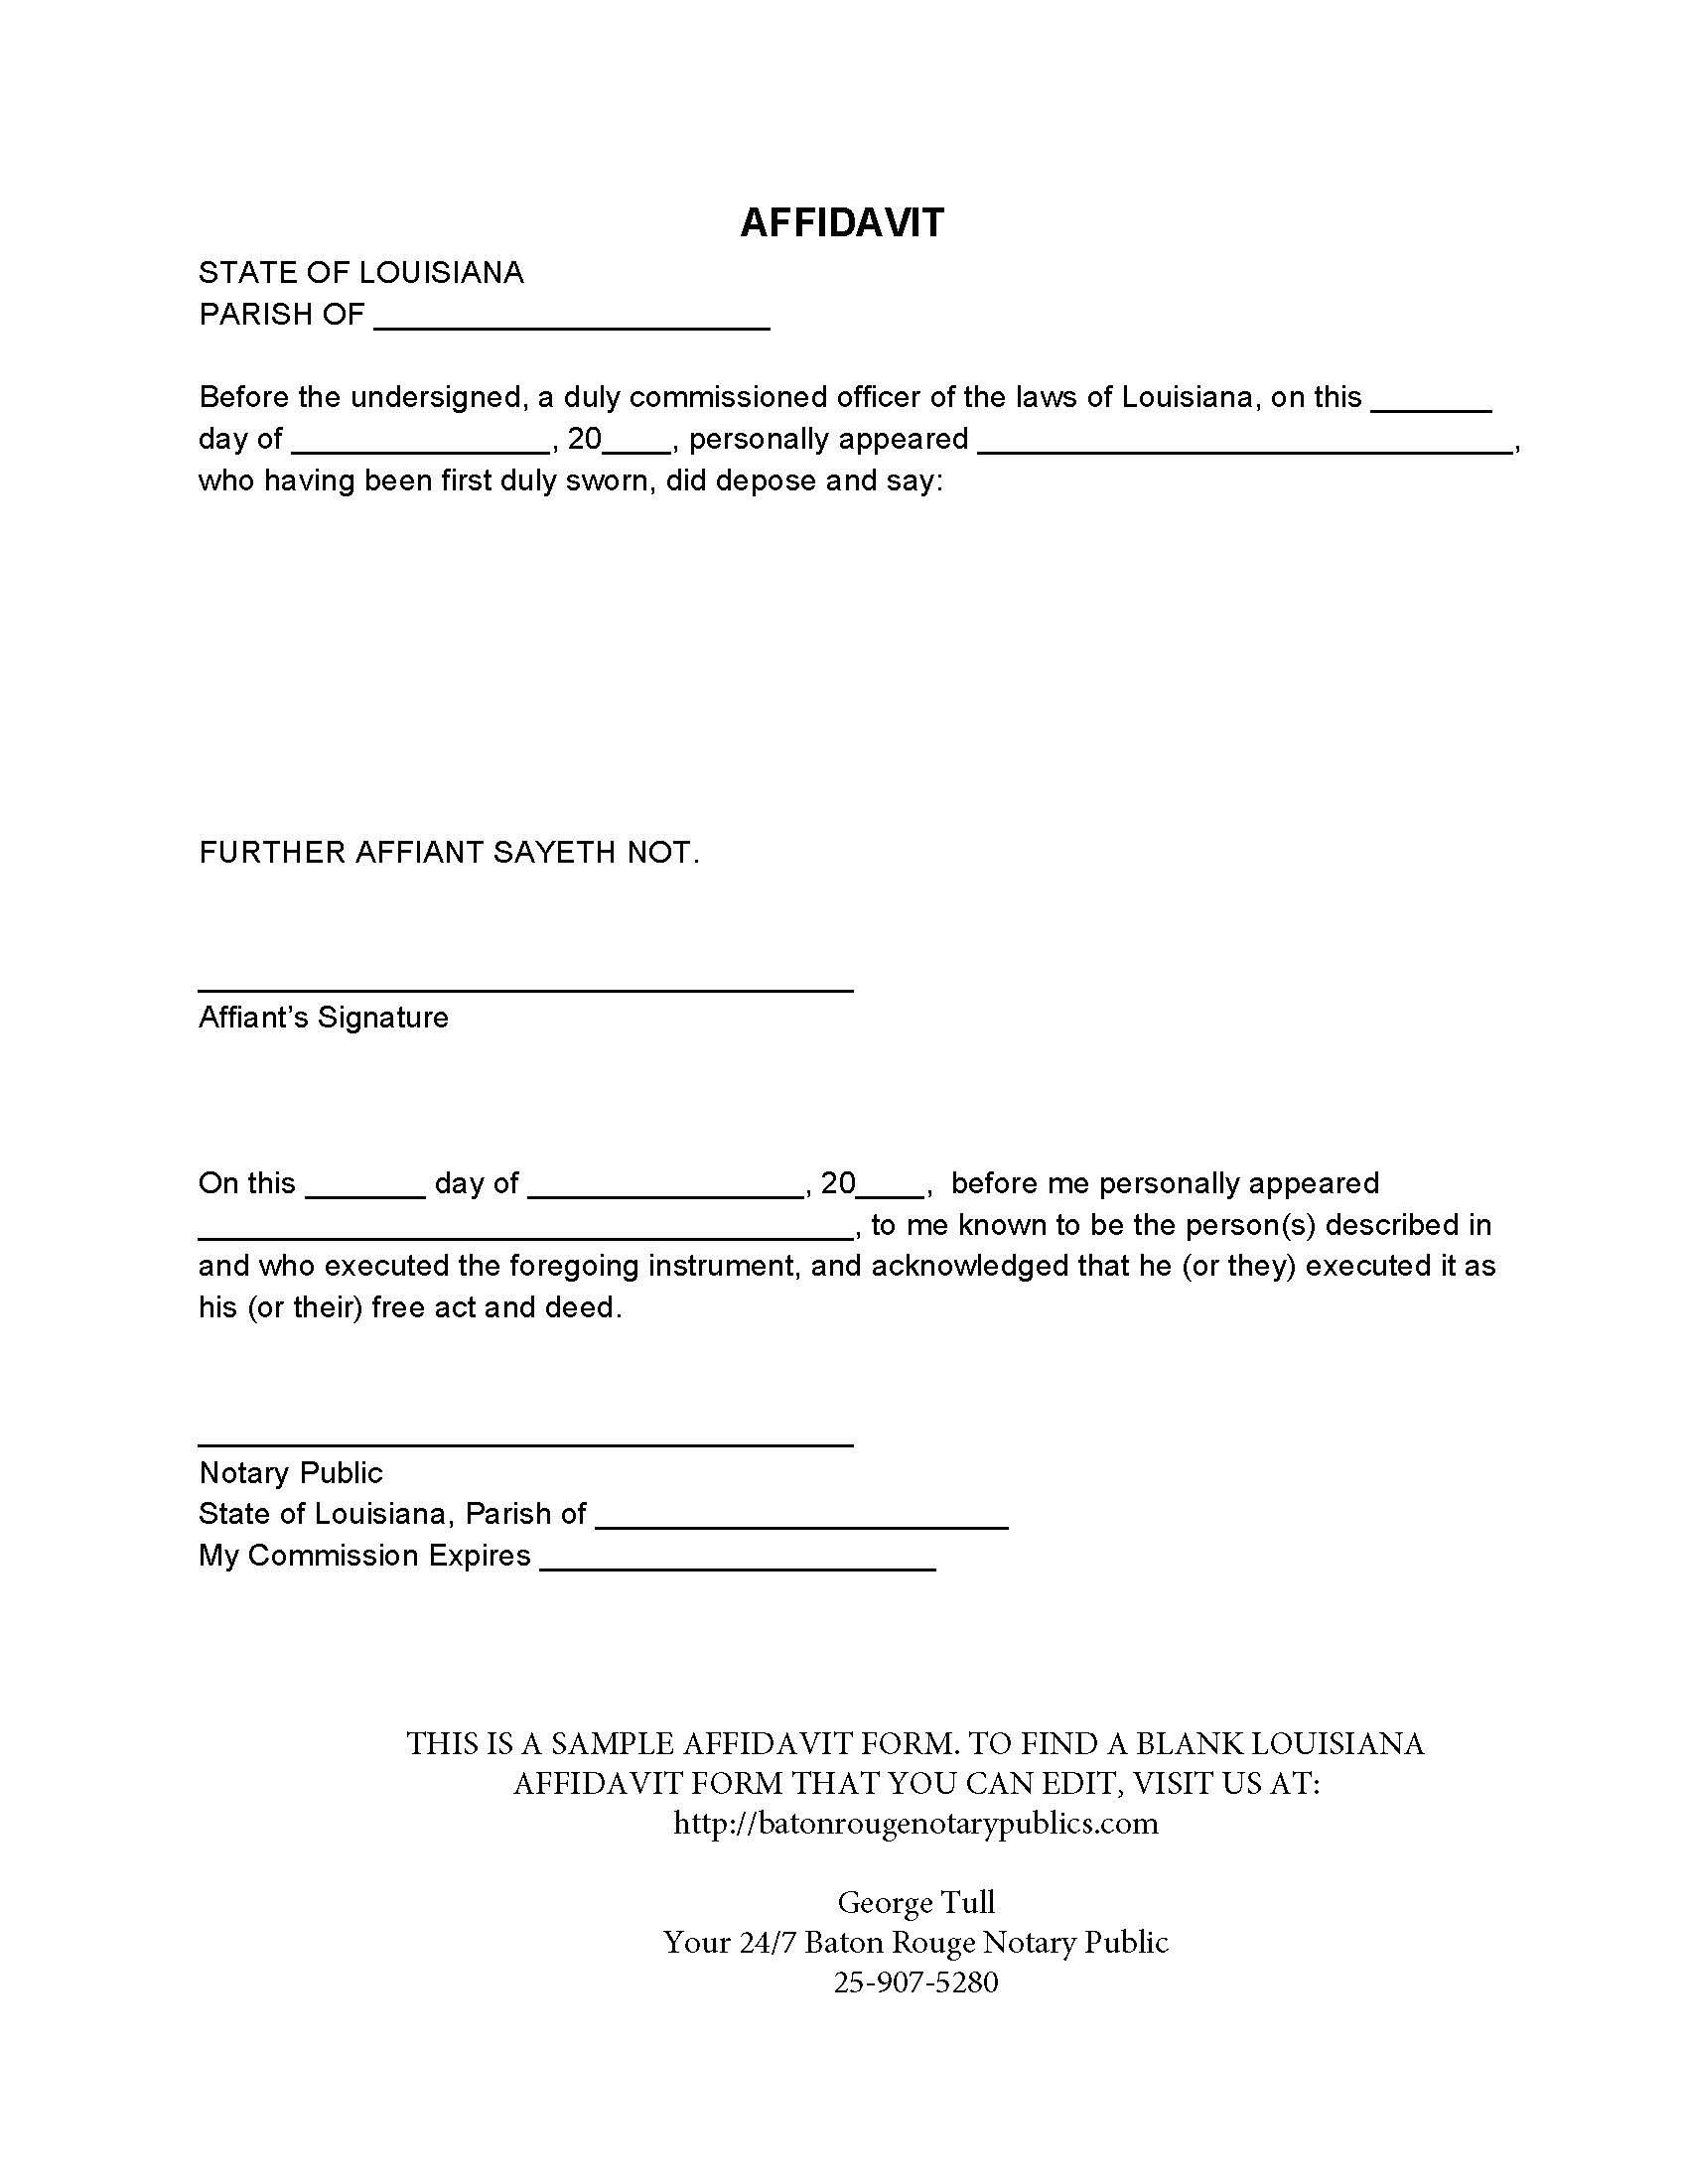 Sample Notary Statements Very Simple Affidavit Form Template Example  Featuring Some Blank .  Affidavit Template Uk